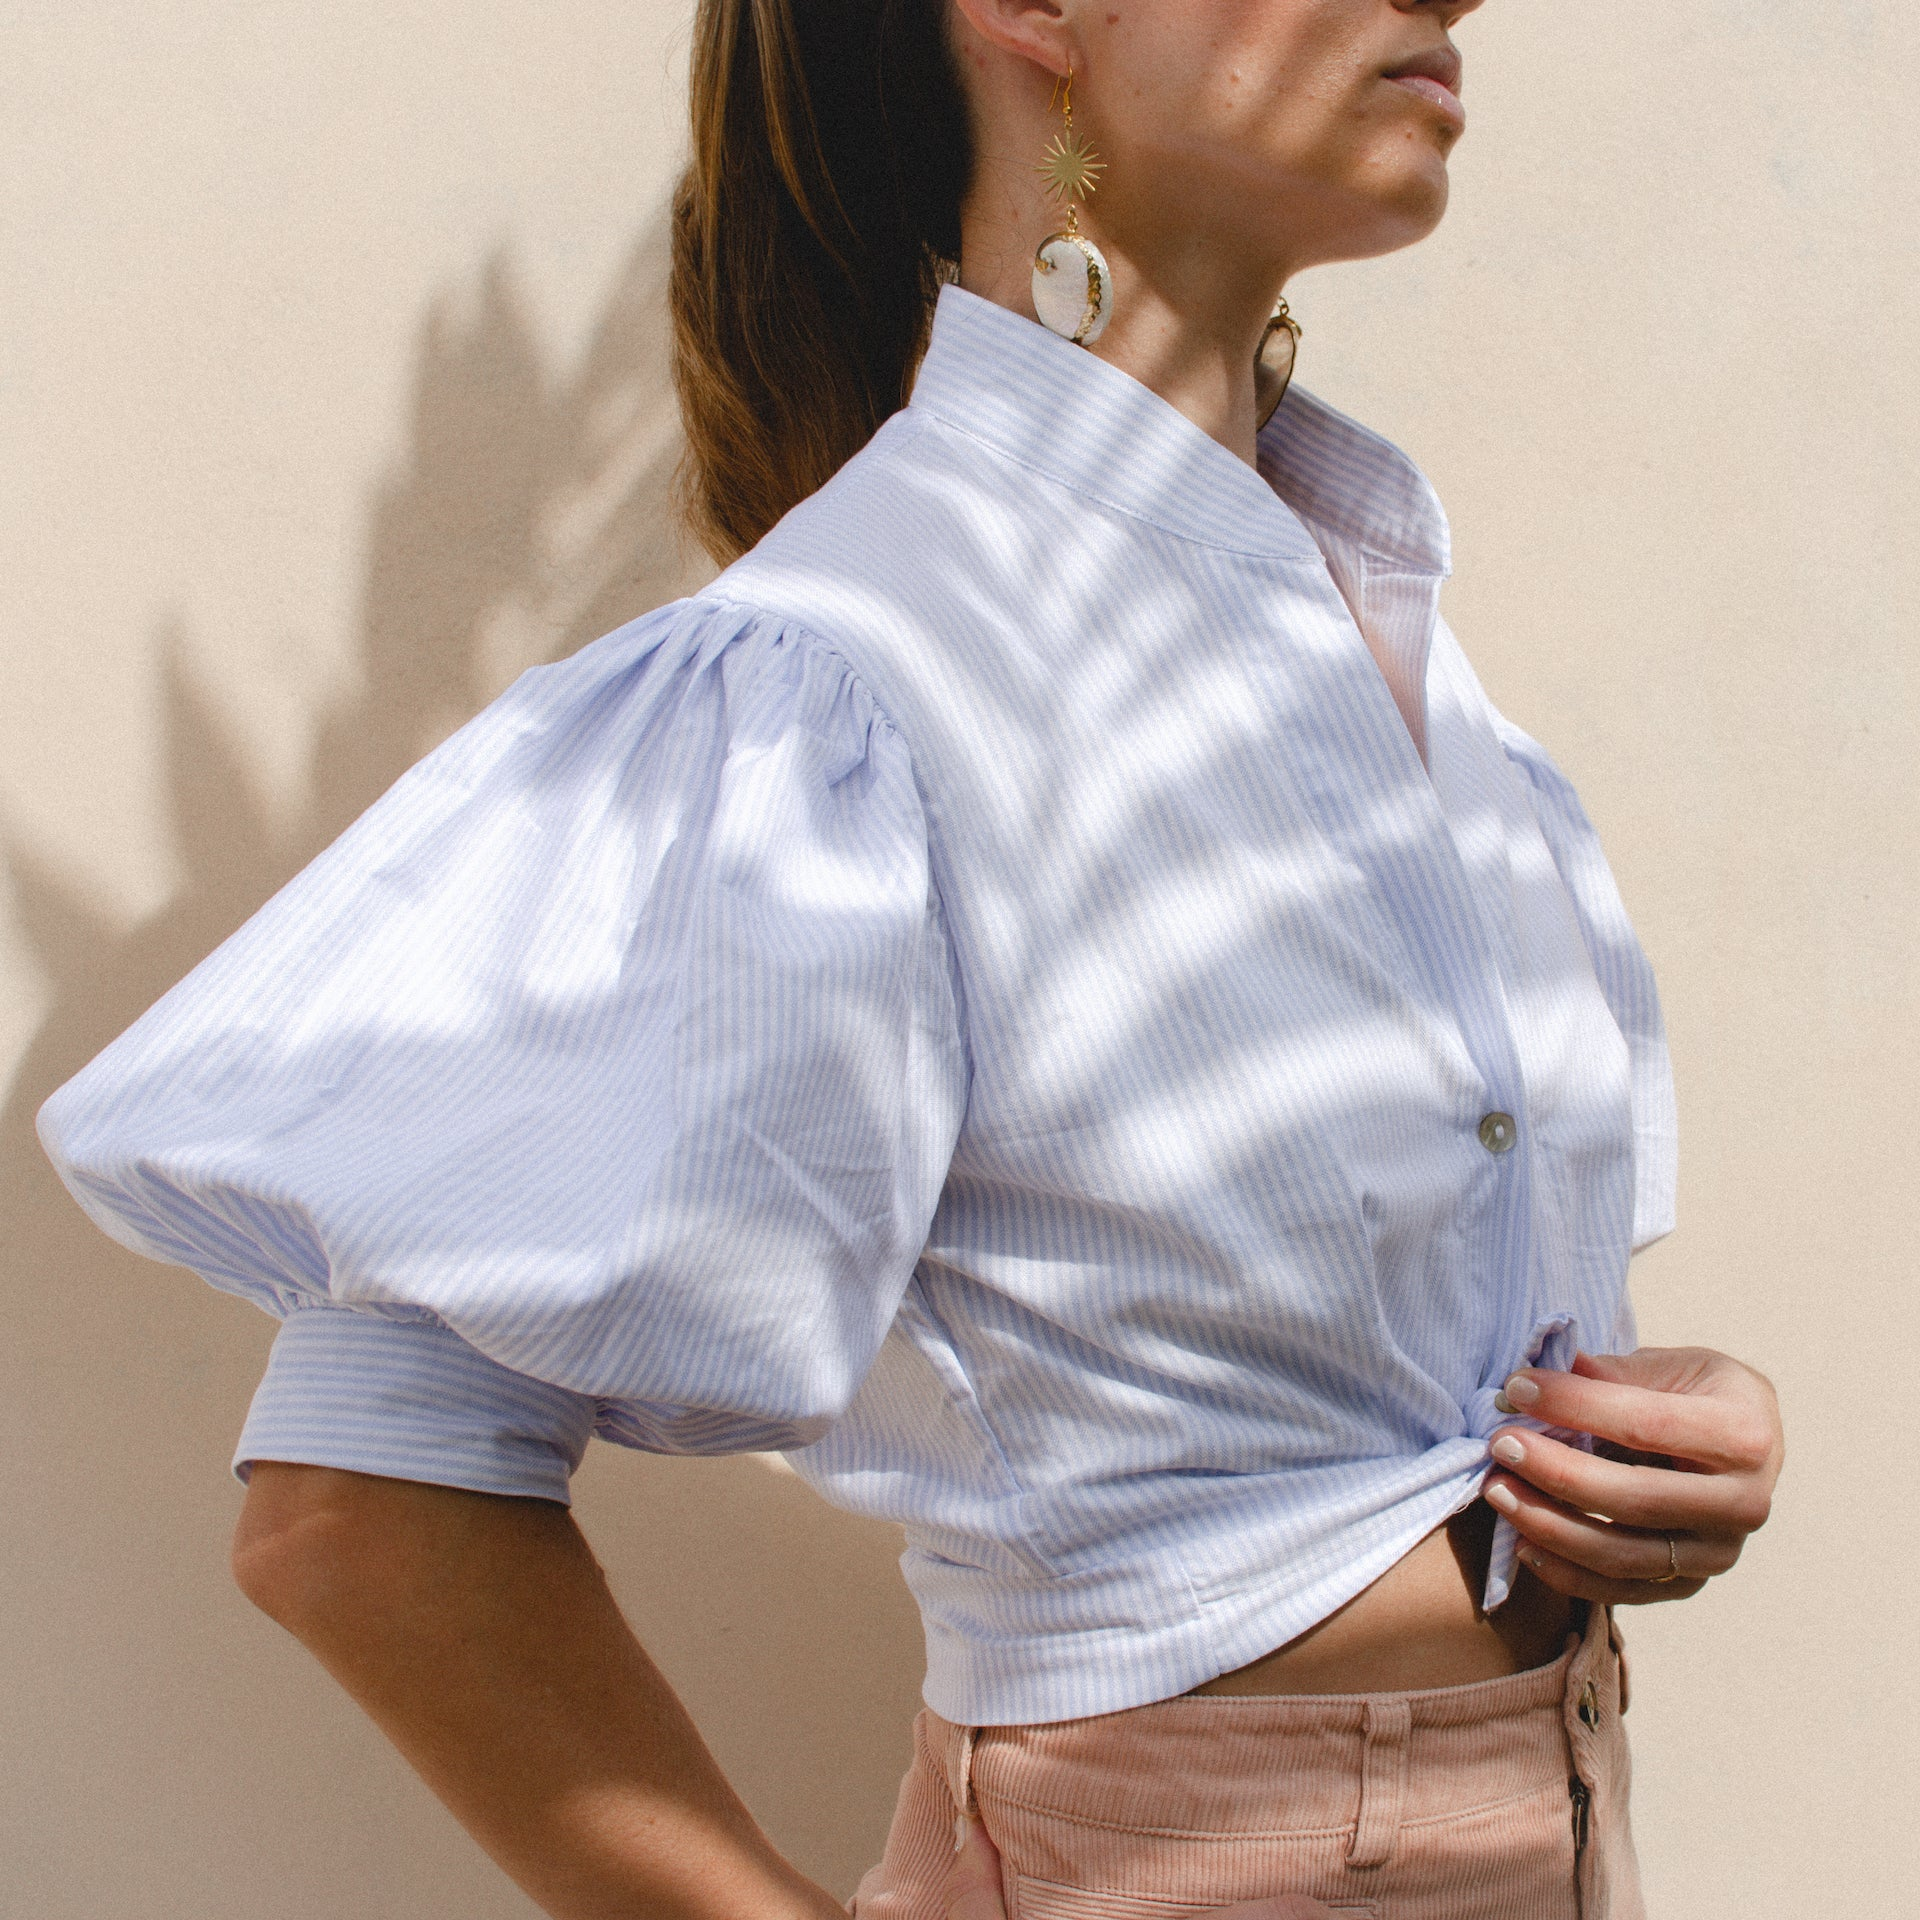 CELESTINE PUFF SLEEVE SHIRT IN BLUE AND WHITE STRIPES